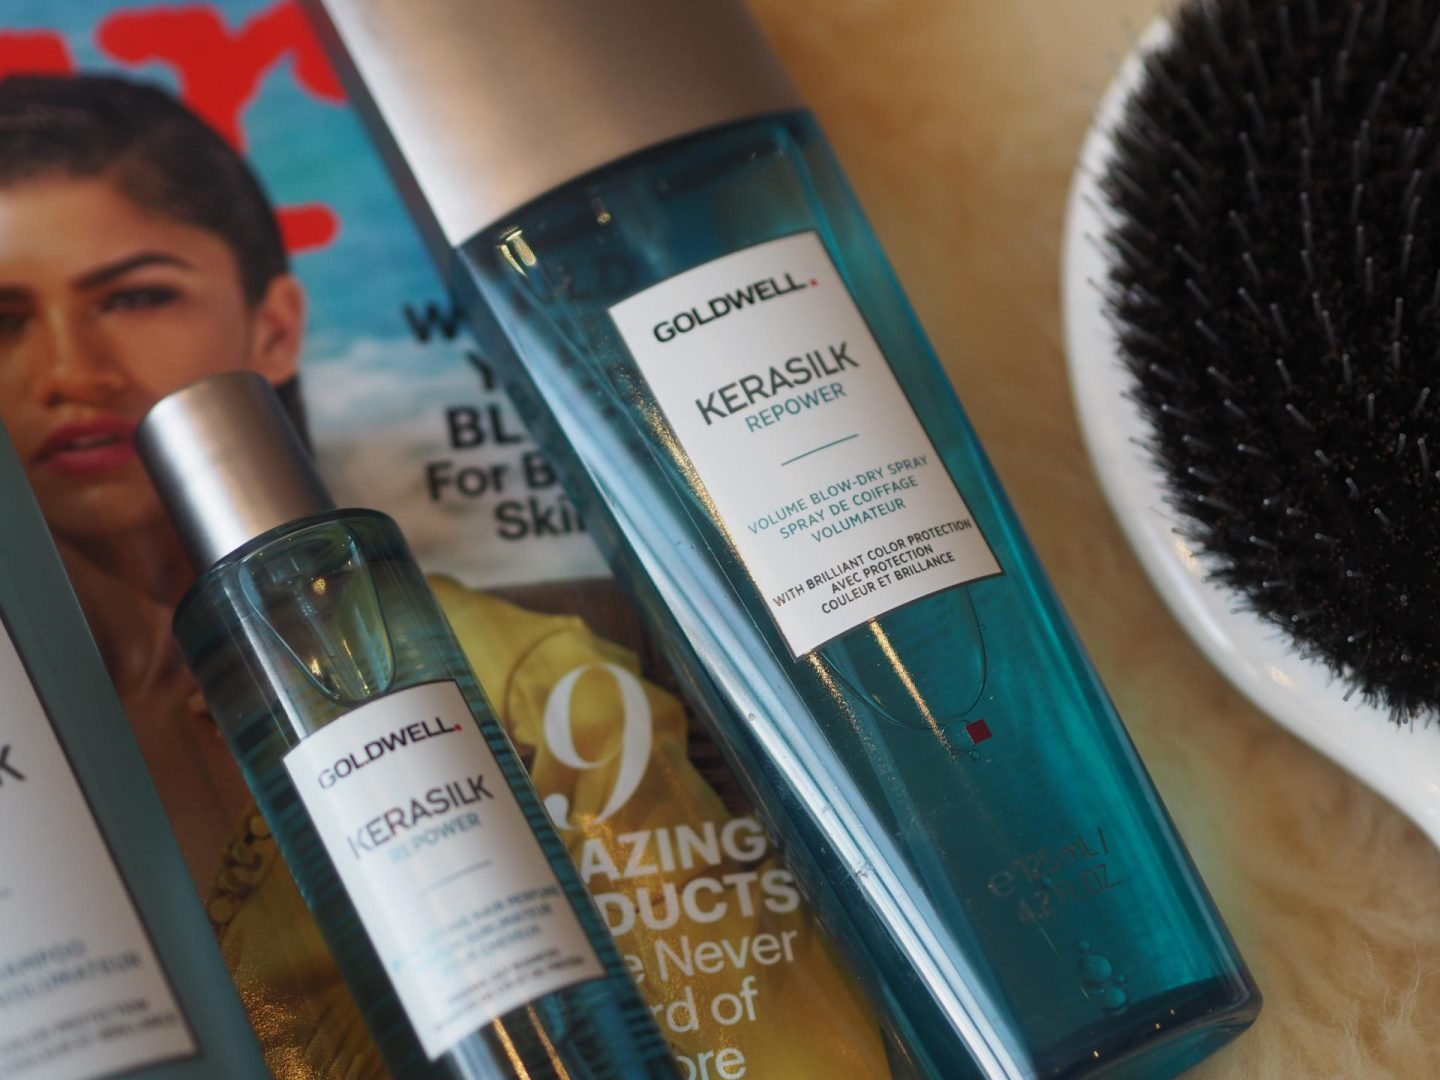 Goldwell Kerasilk Repower Volumising Shampoo as well as the Kerasilk Repower Volume Blow Out Spray